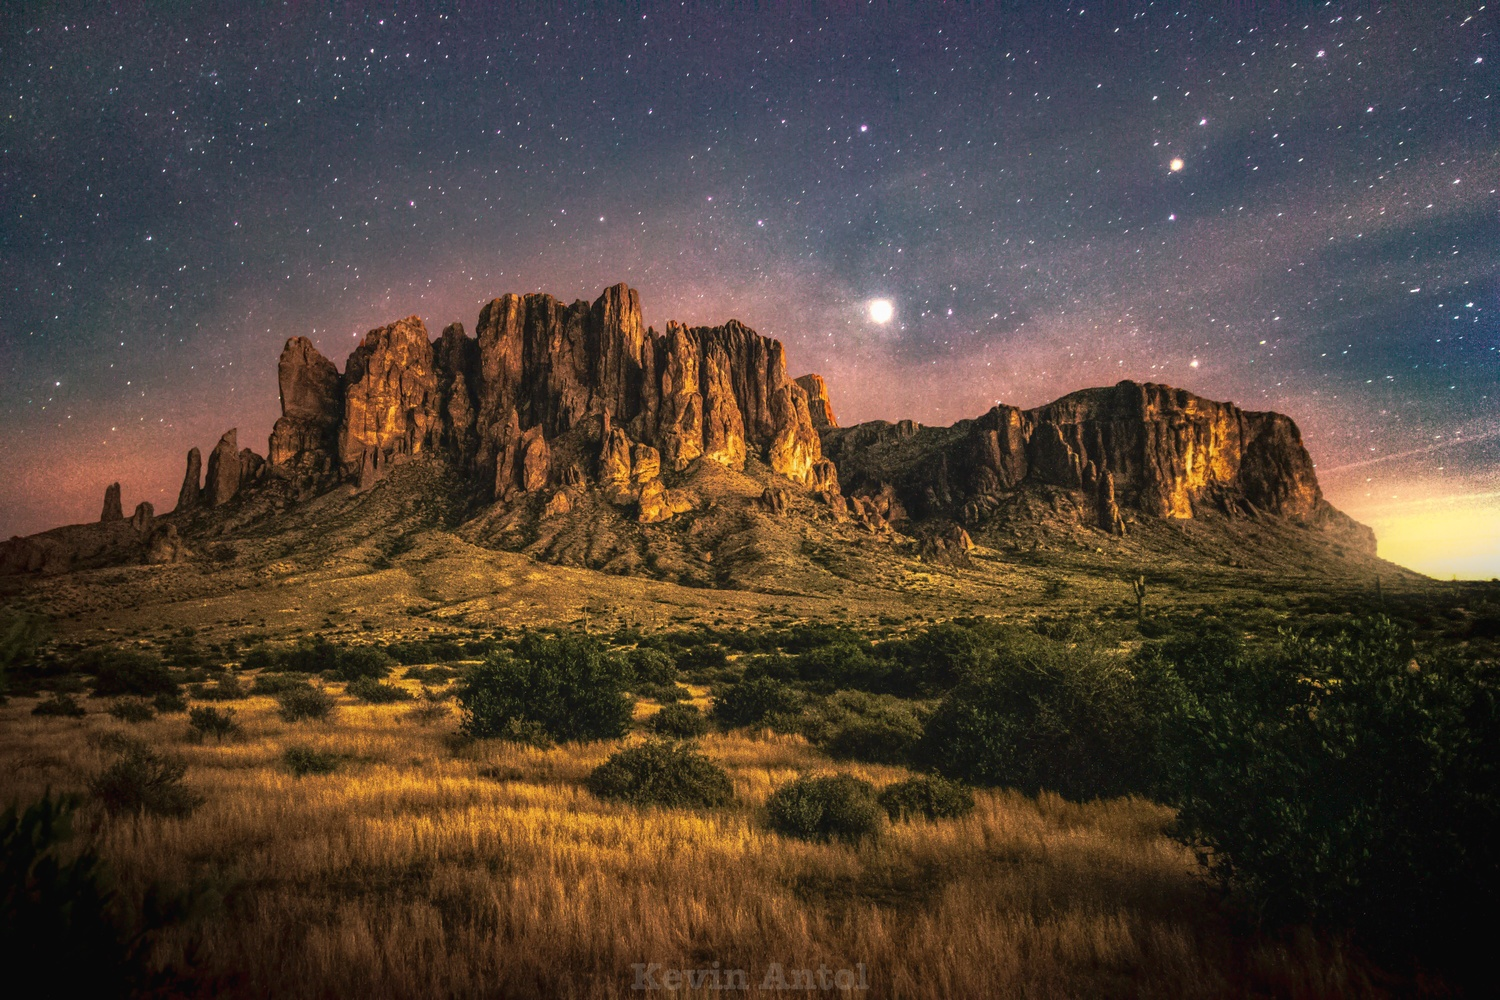 A night out by Kevin Antol